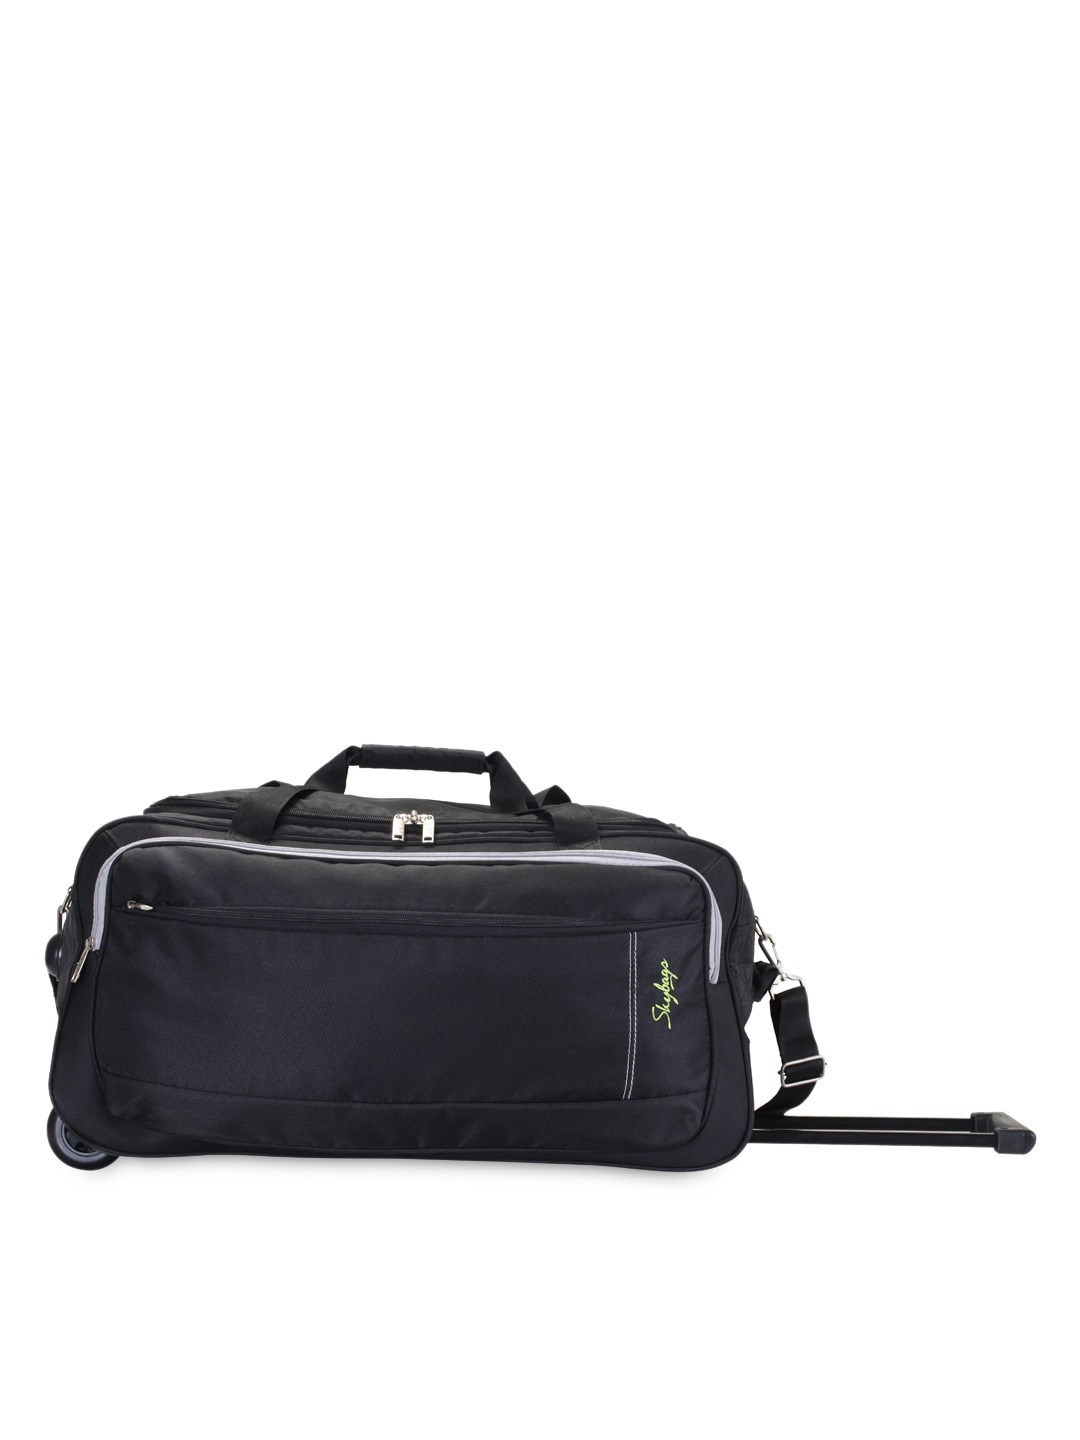 e91b758d40cc Skybags Unisex Black Small Trolley Duffel Bag